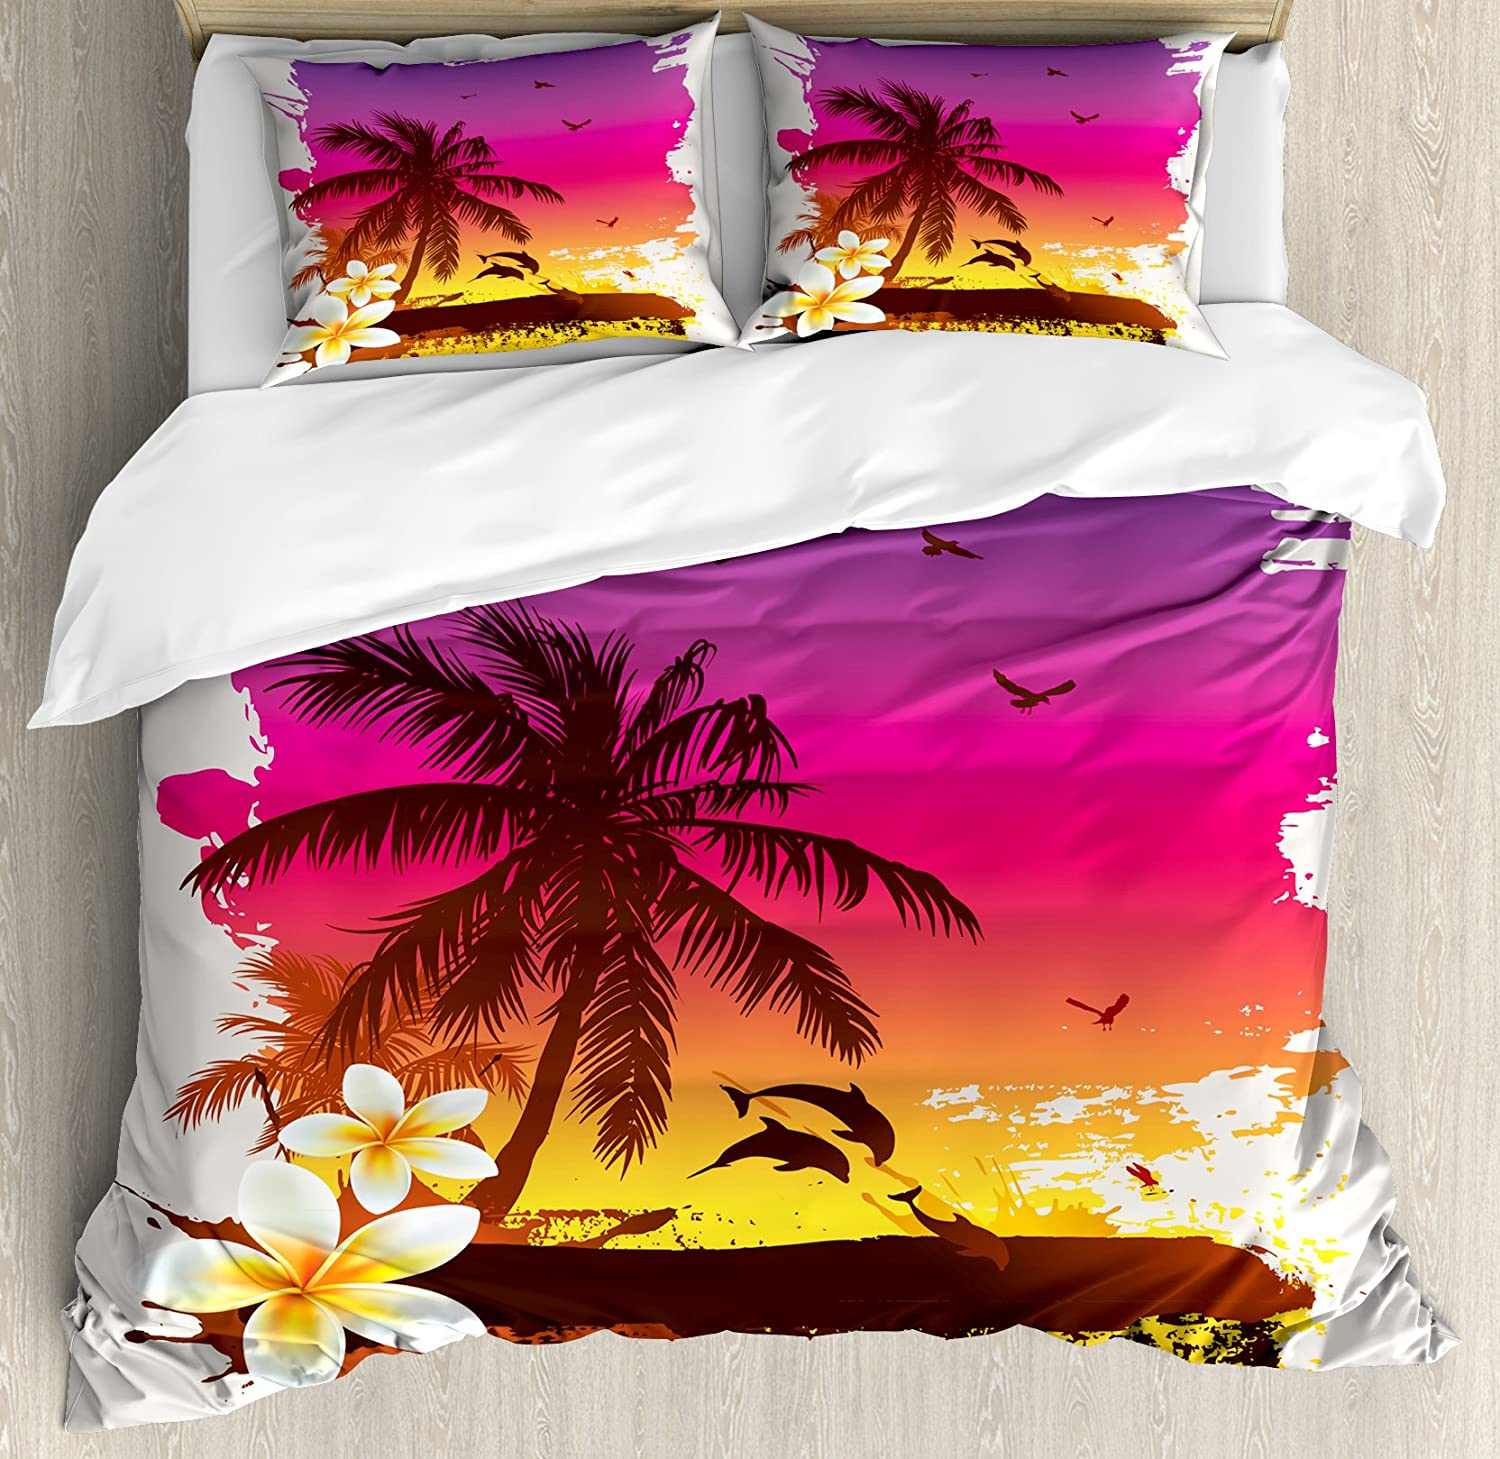 Ambesonne Luau Duvet Cover Set, Tropical Retro Sunset Palm Trees Jumping Dolphins on The Beach Scenery Illustration, Decorative 3 Piece Bedding Set with 2 Pillow Shams, Queen Size, Yellow Magenta